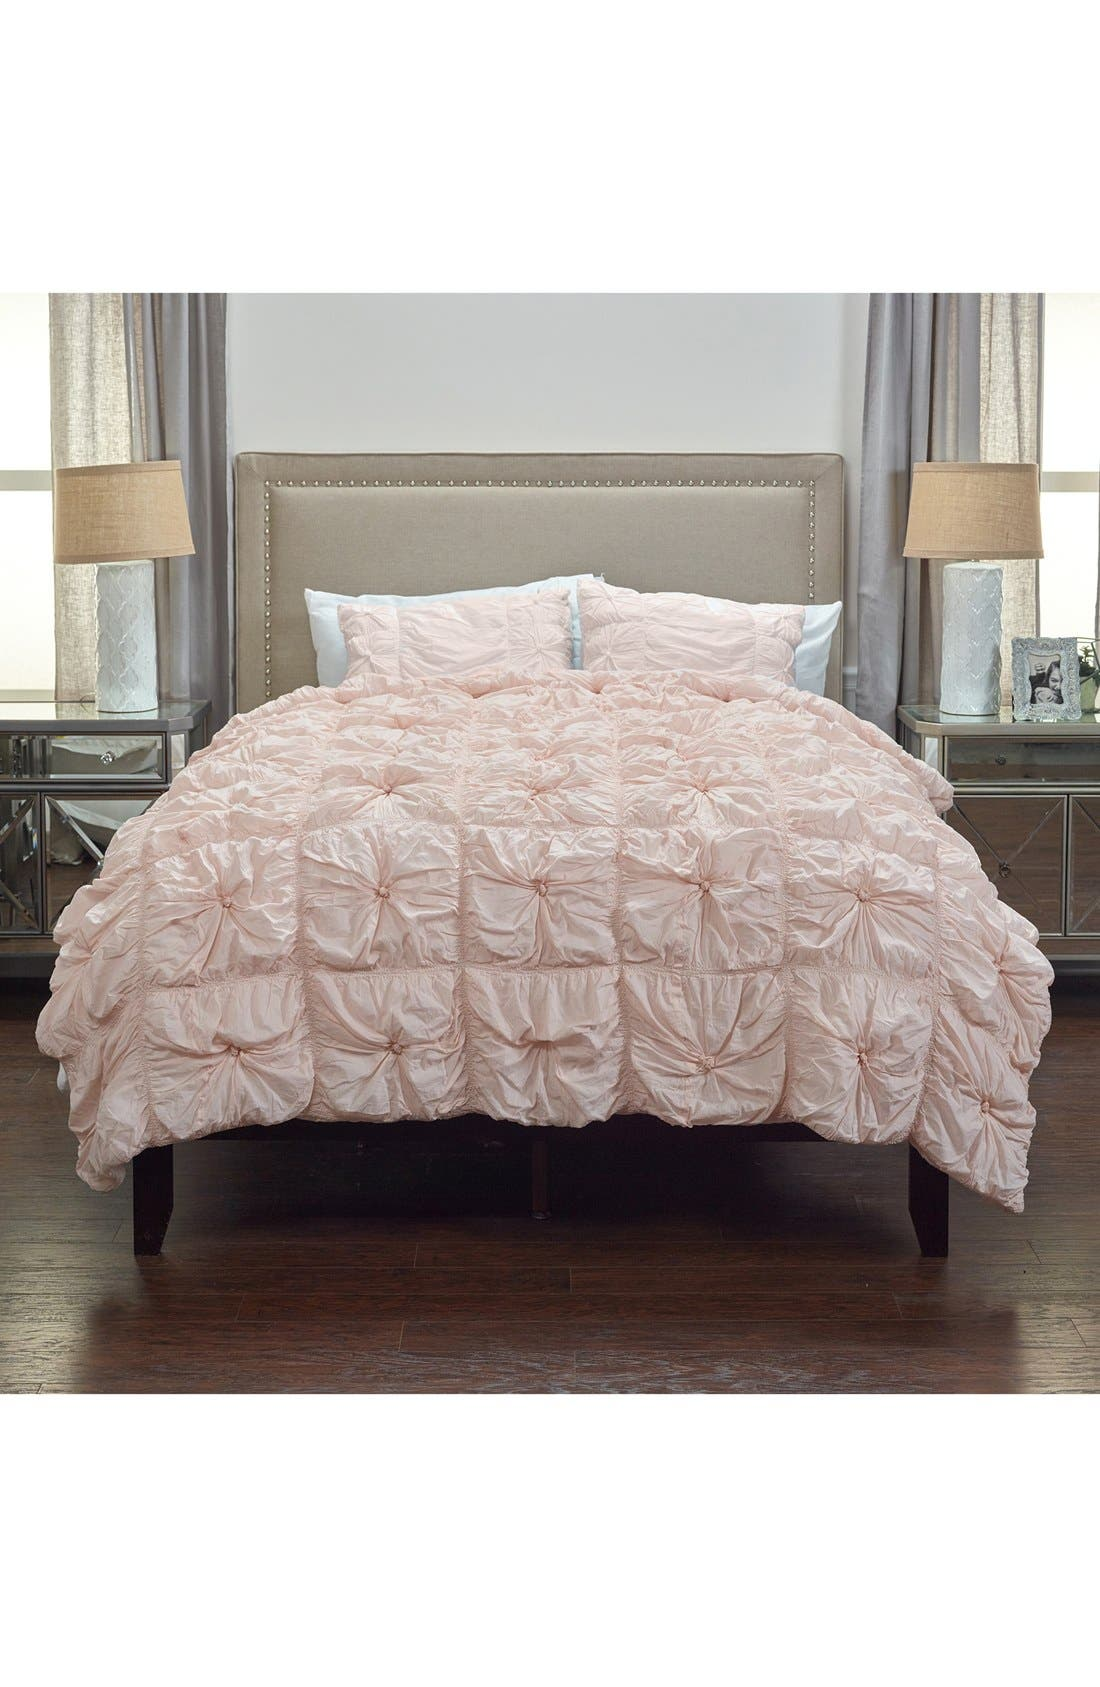 Rizzy Home Knots Comforter & Sham Set